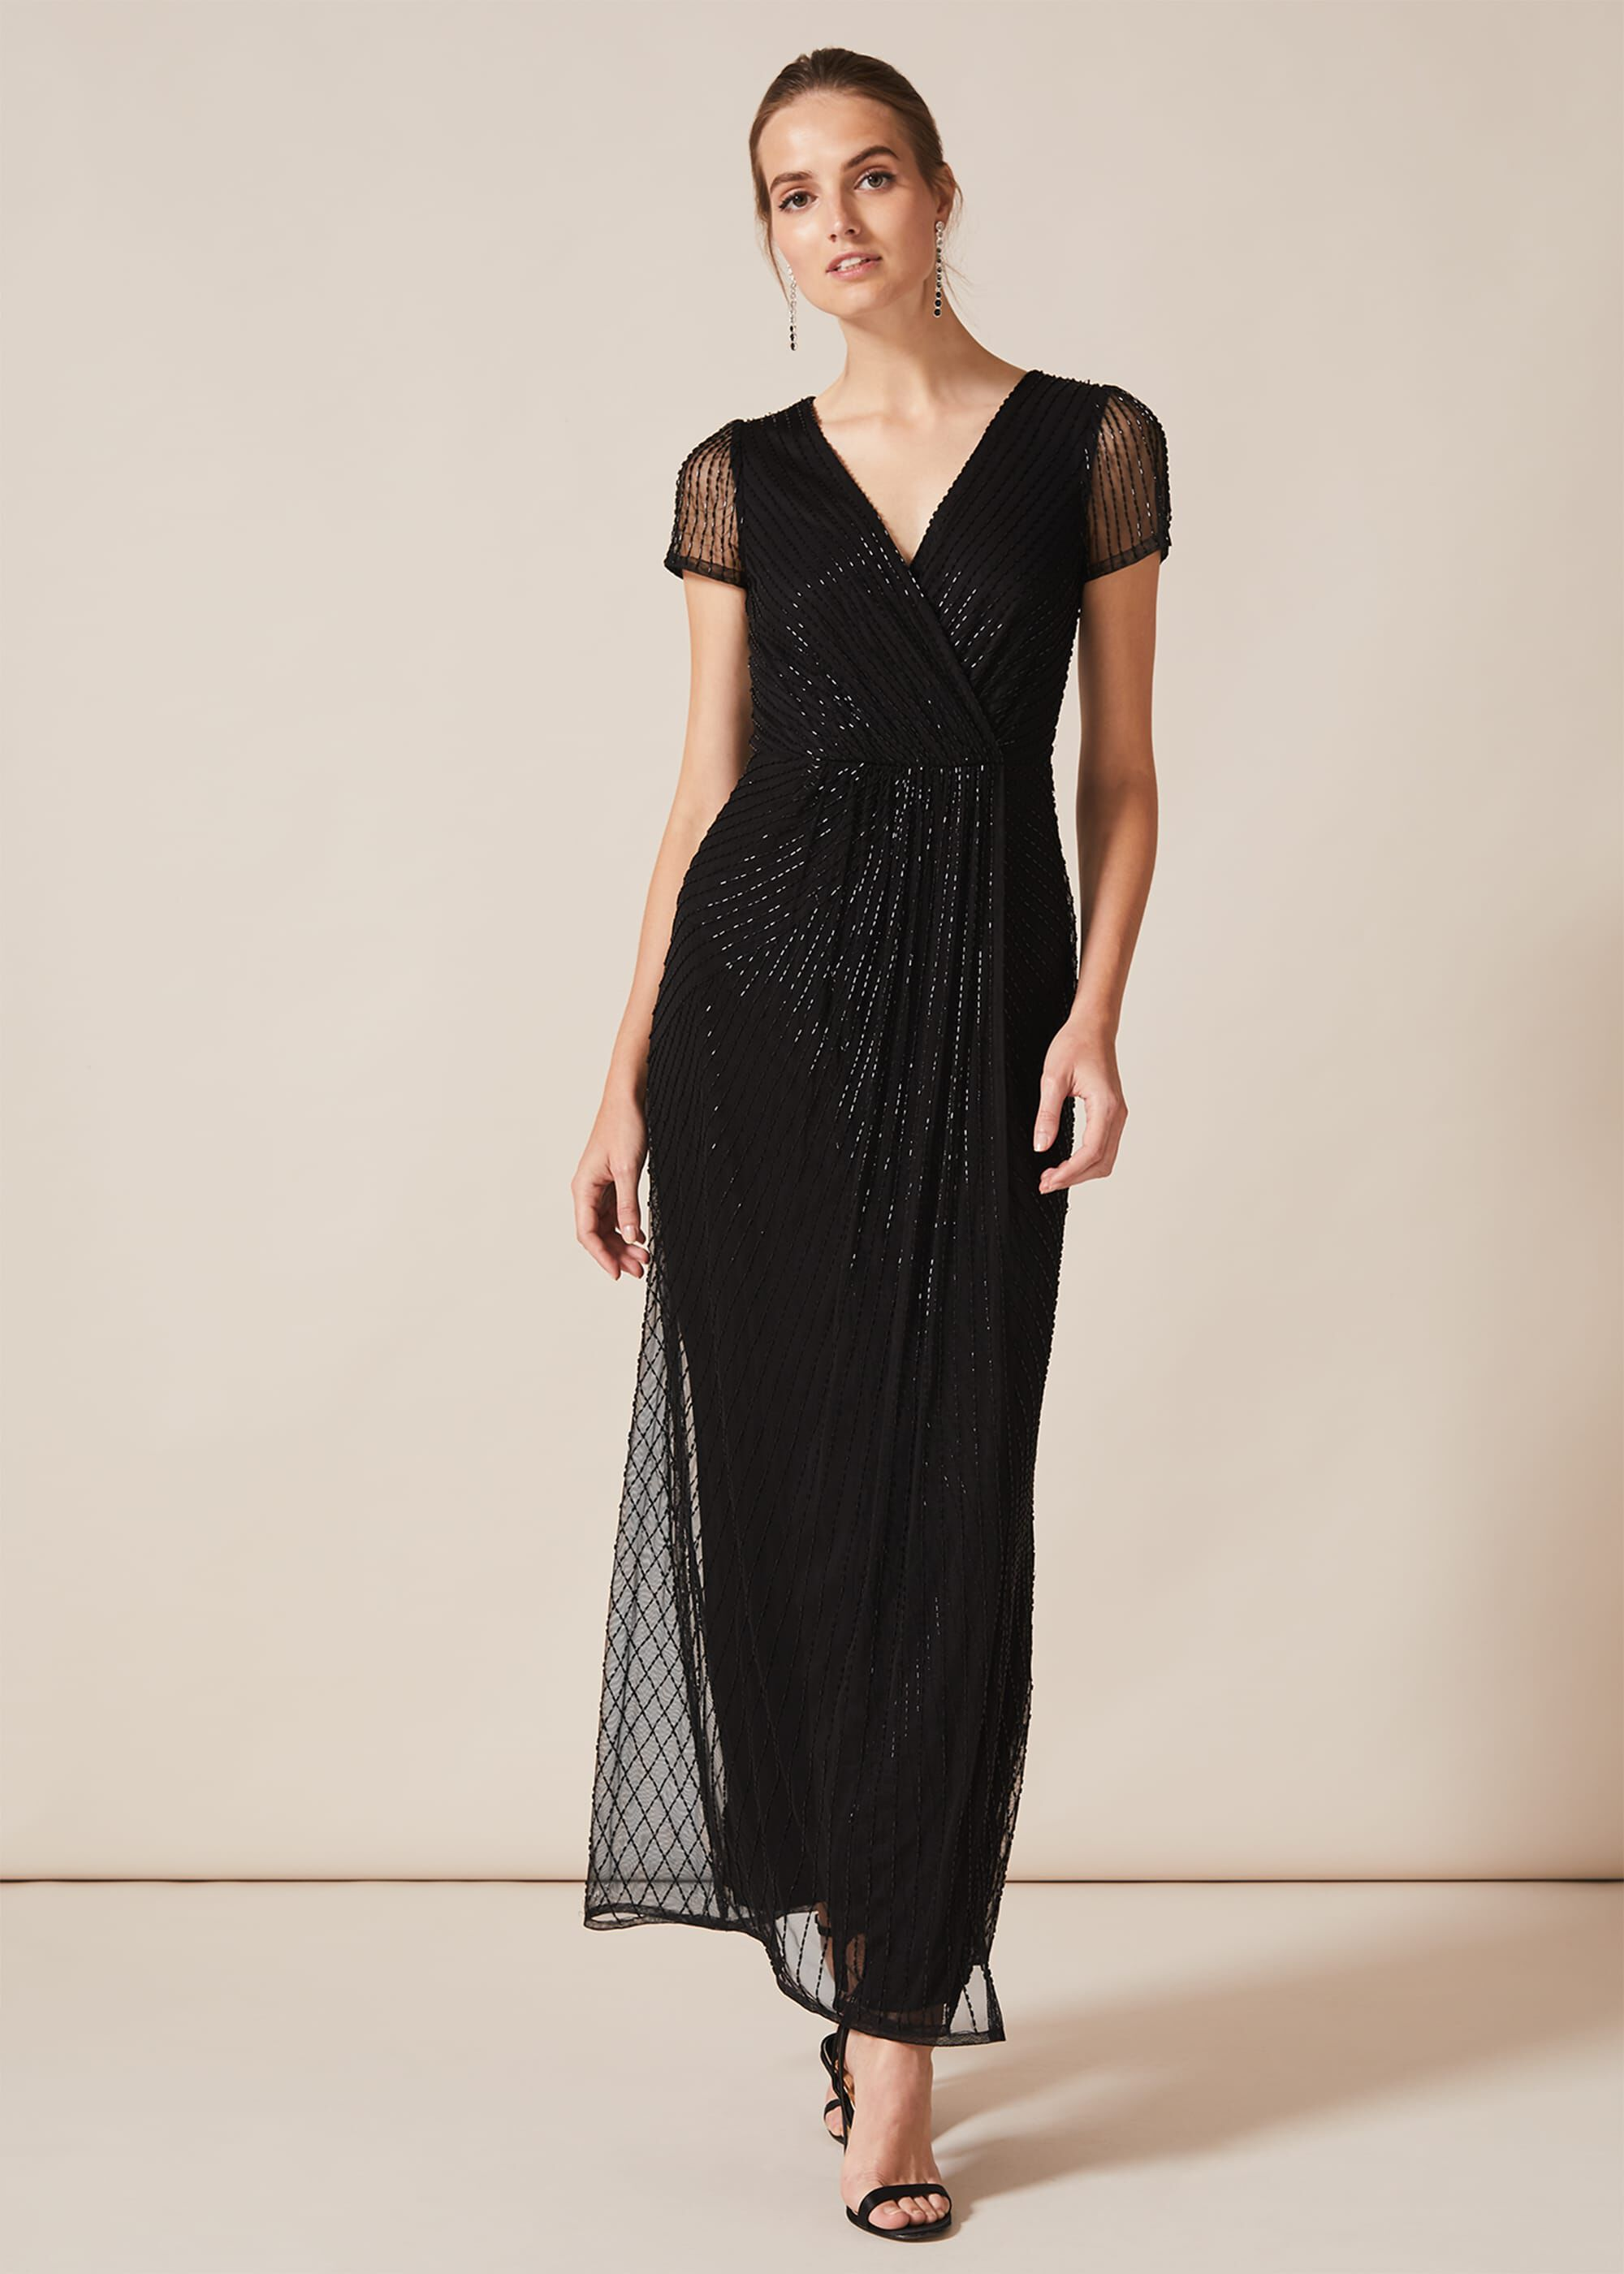 Phase Eight Natasia Beaded Maxi Dress, Black, Maxi, Occasion Dress